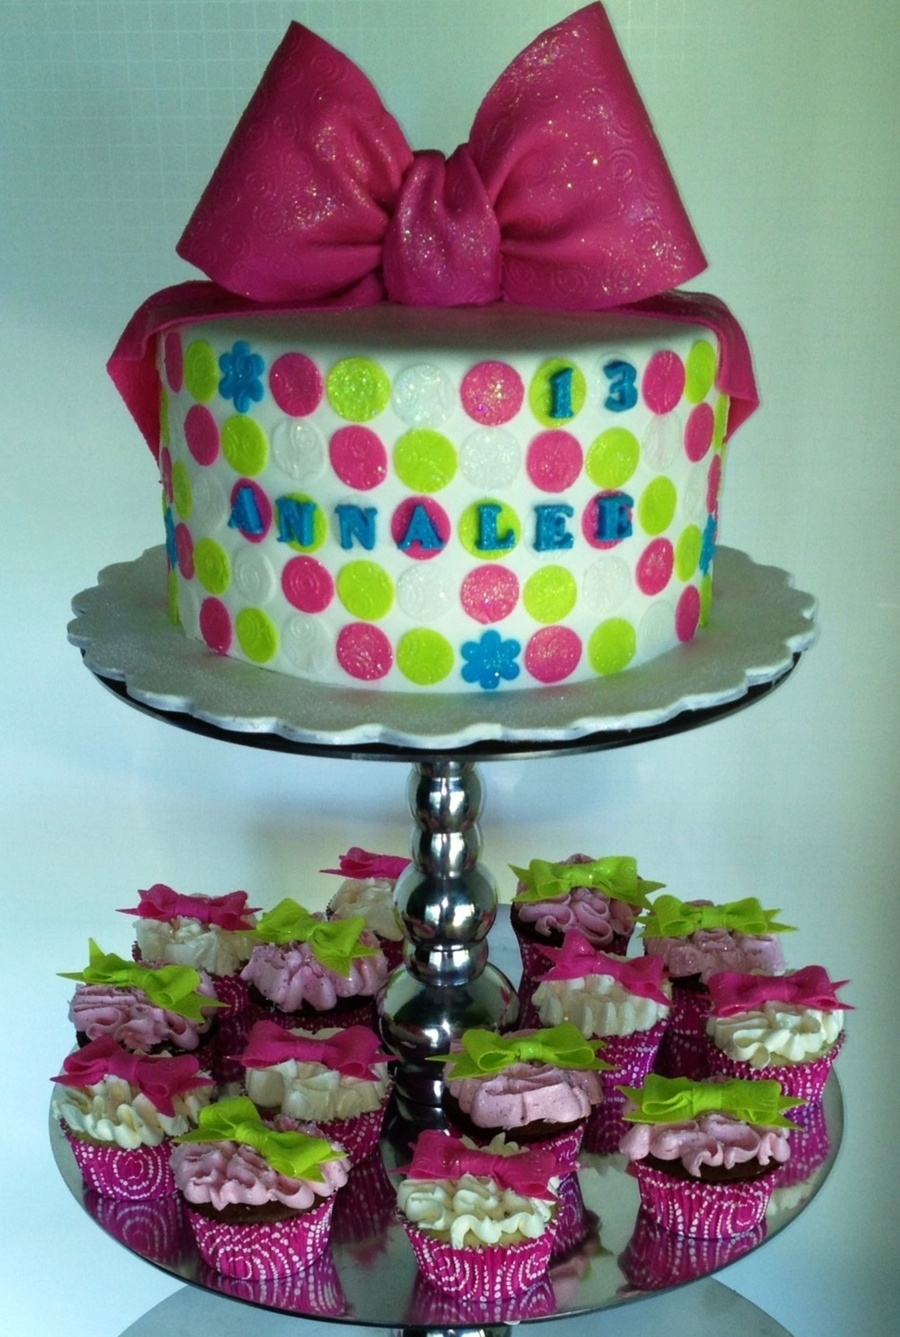 Pink And Green Polka Dots Bows And Sparkle For Annalees 13Th Birthday on Cake Central